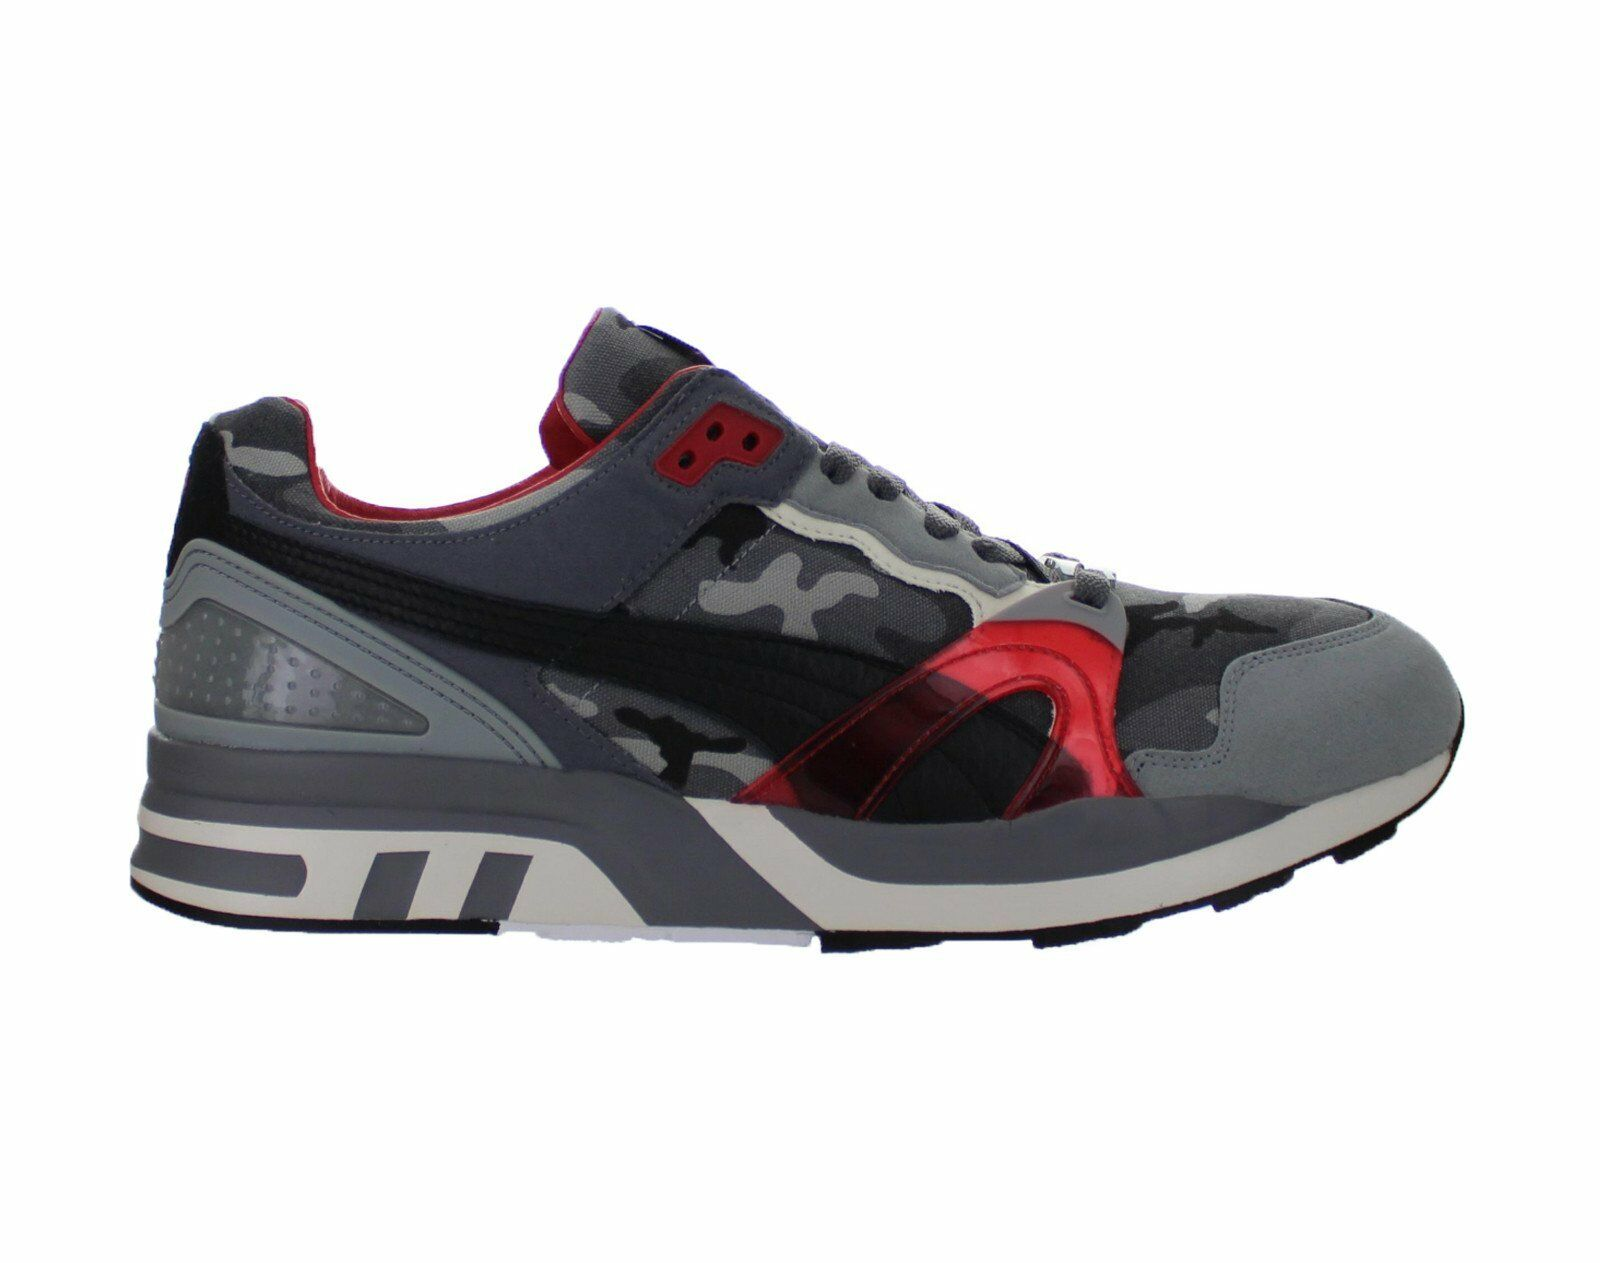 hommes Puma Trinomic XT2 Plus Homegrown Steel gris Rosso Corsa 358405-01